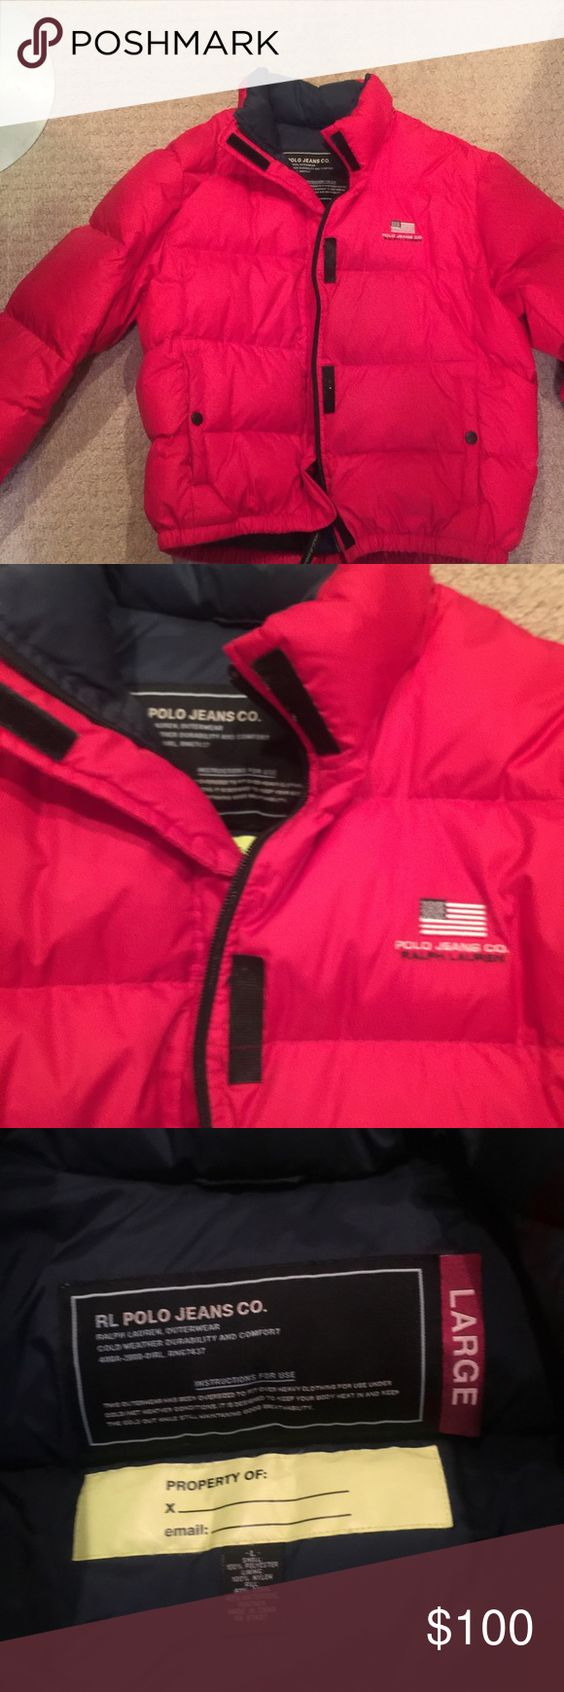 Polo red puffer jacket Awesome warm jacket Polo by Ralph Lauren Jackets & Coats Puffers